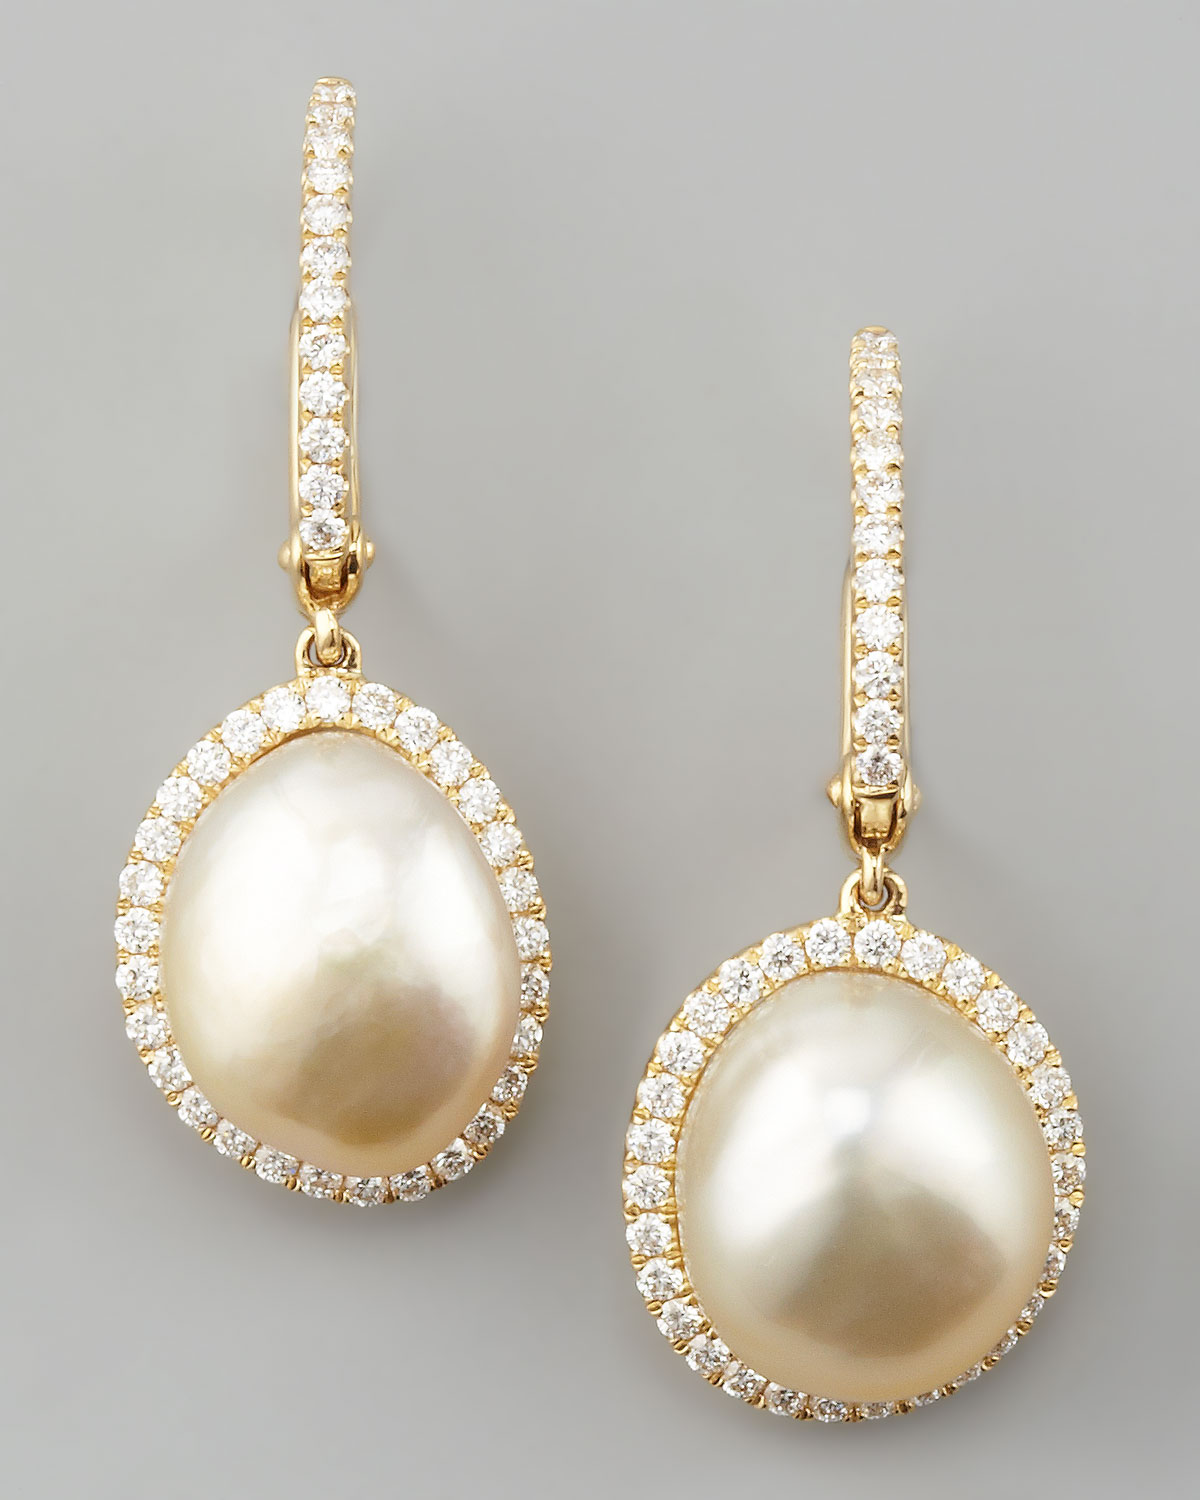 White South Sea Pearl Diamond Framed Drop Earrings Yellow Gold